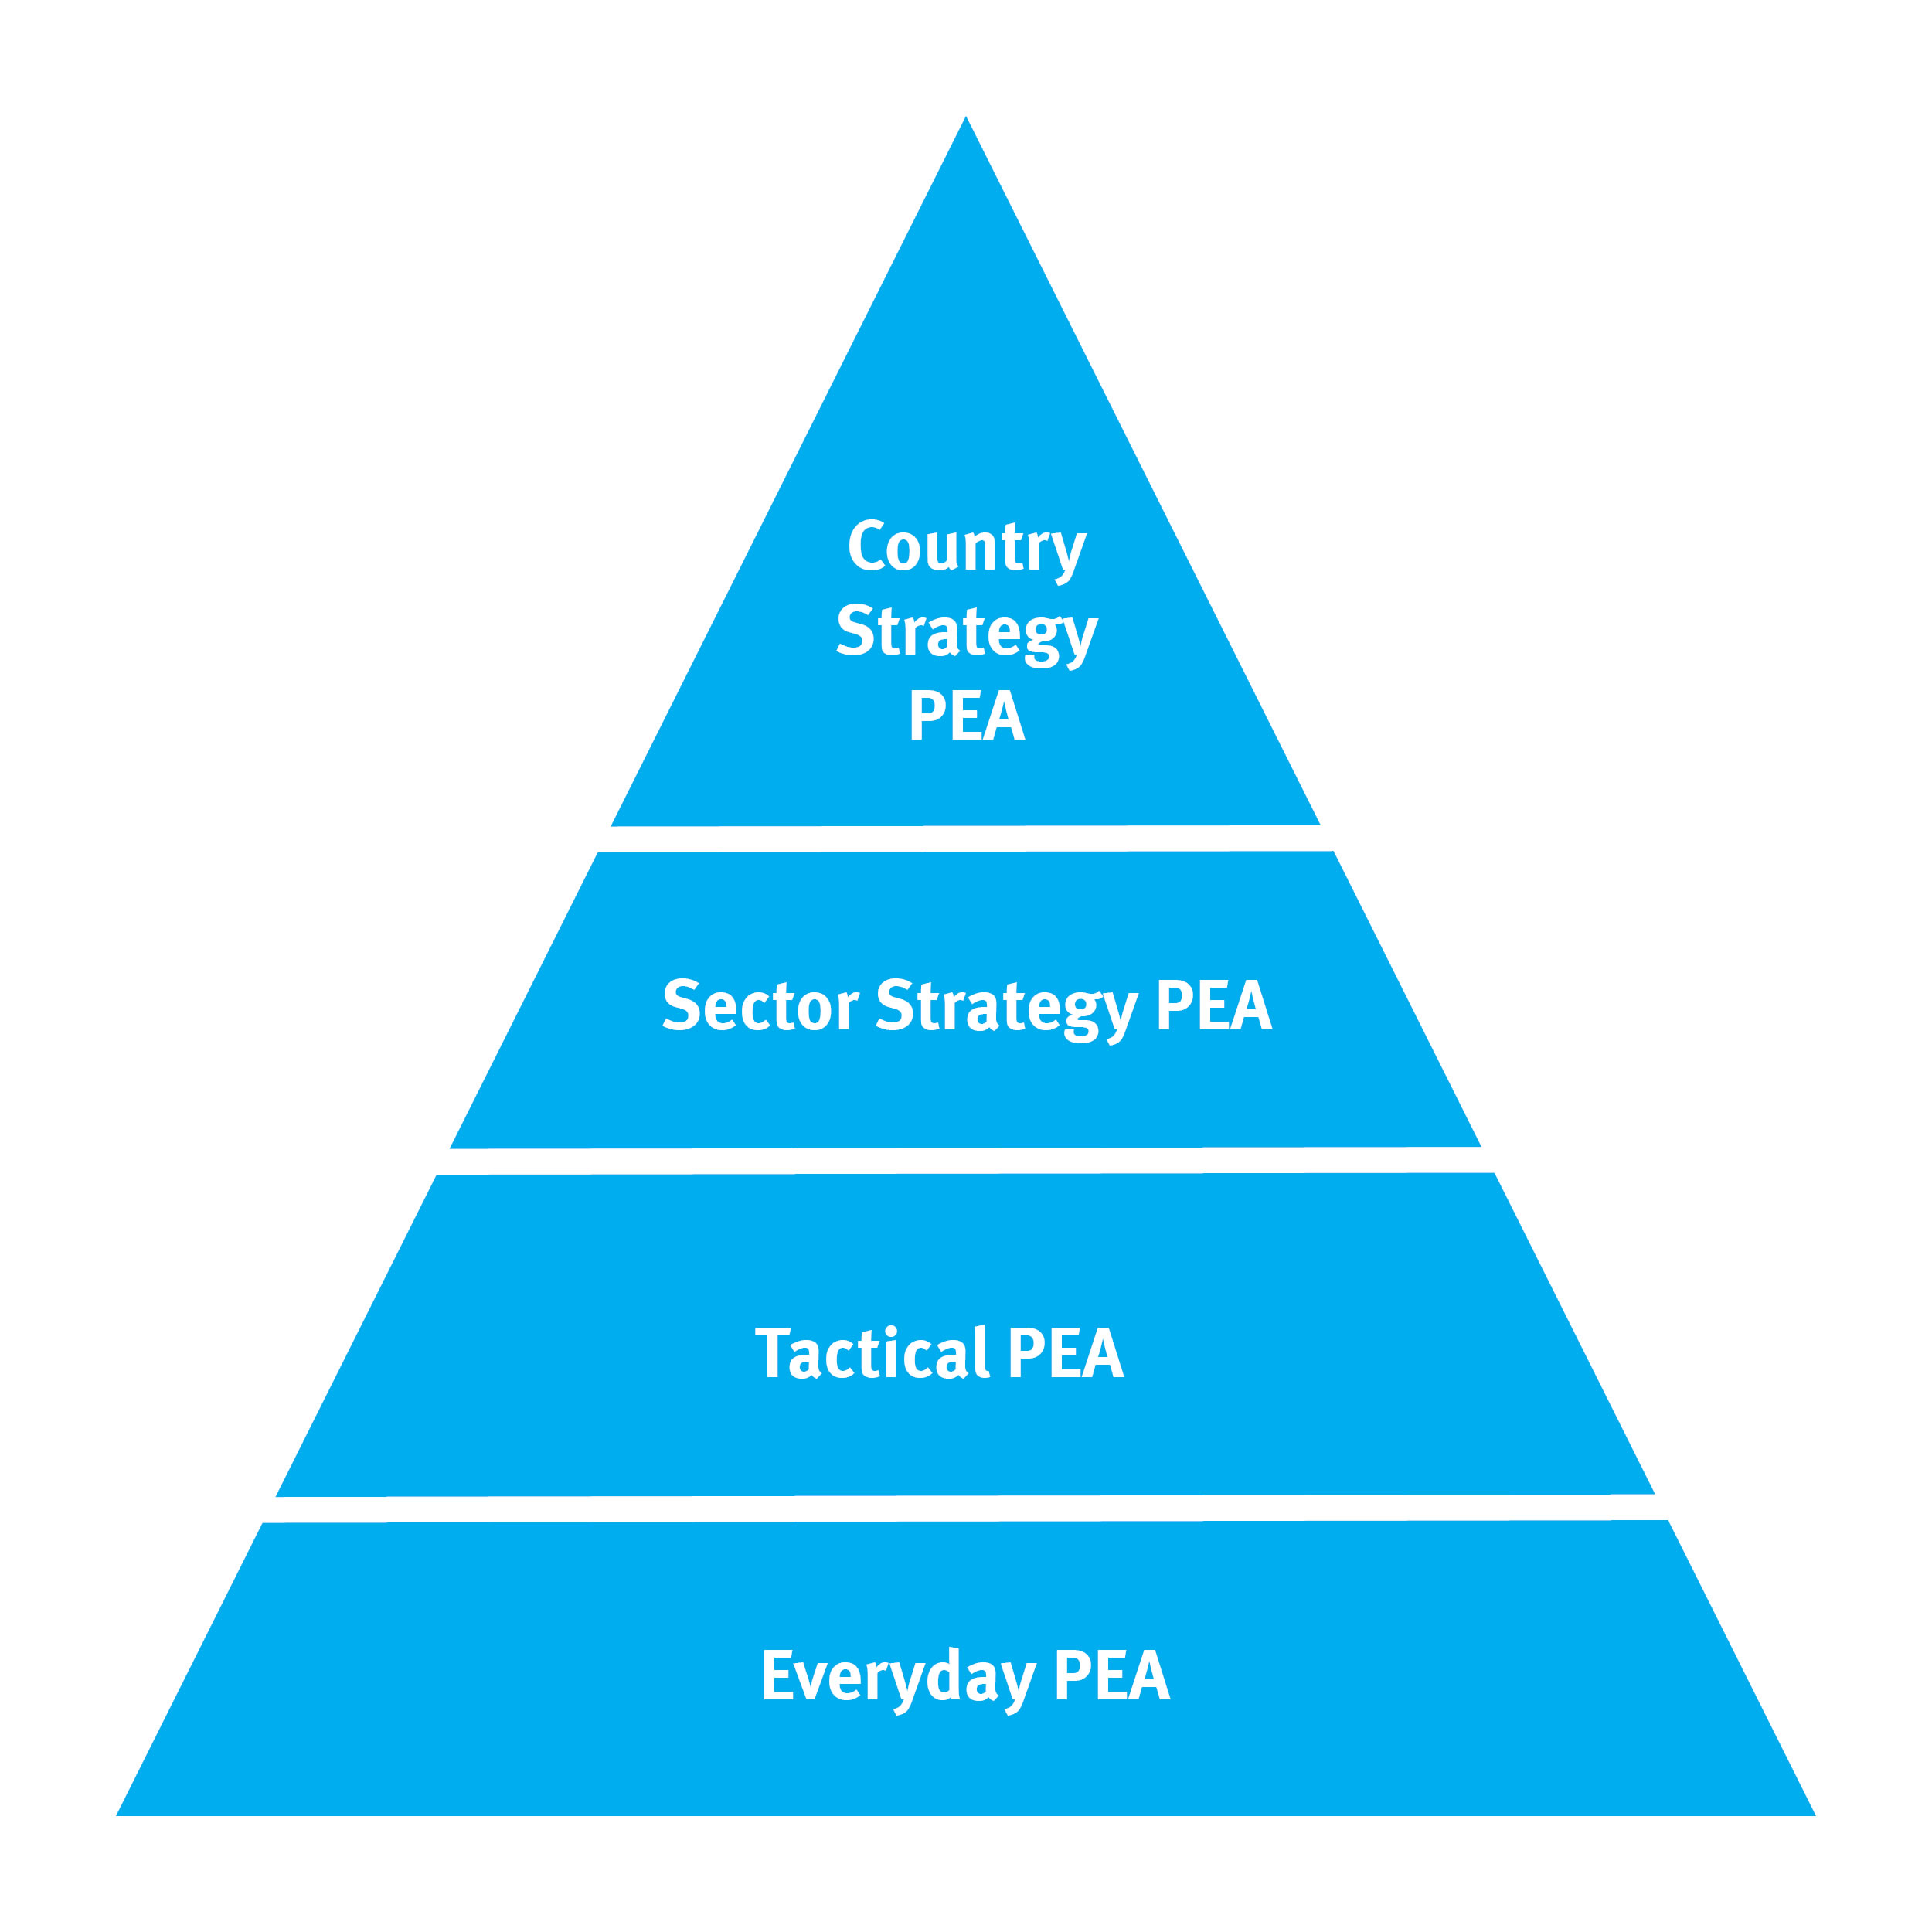 A pyramid-shaped diagram showing the structure of the toolkit: everyday PEA is at the bottom, with tactical PEA, then sector strategy PEA, then country strategy PEA on top.